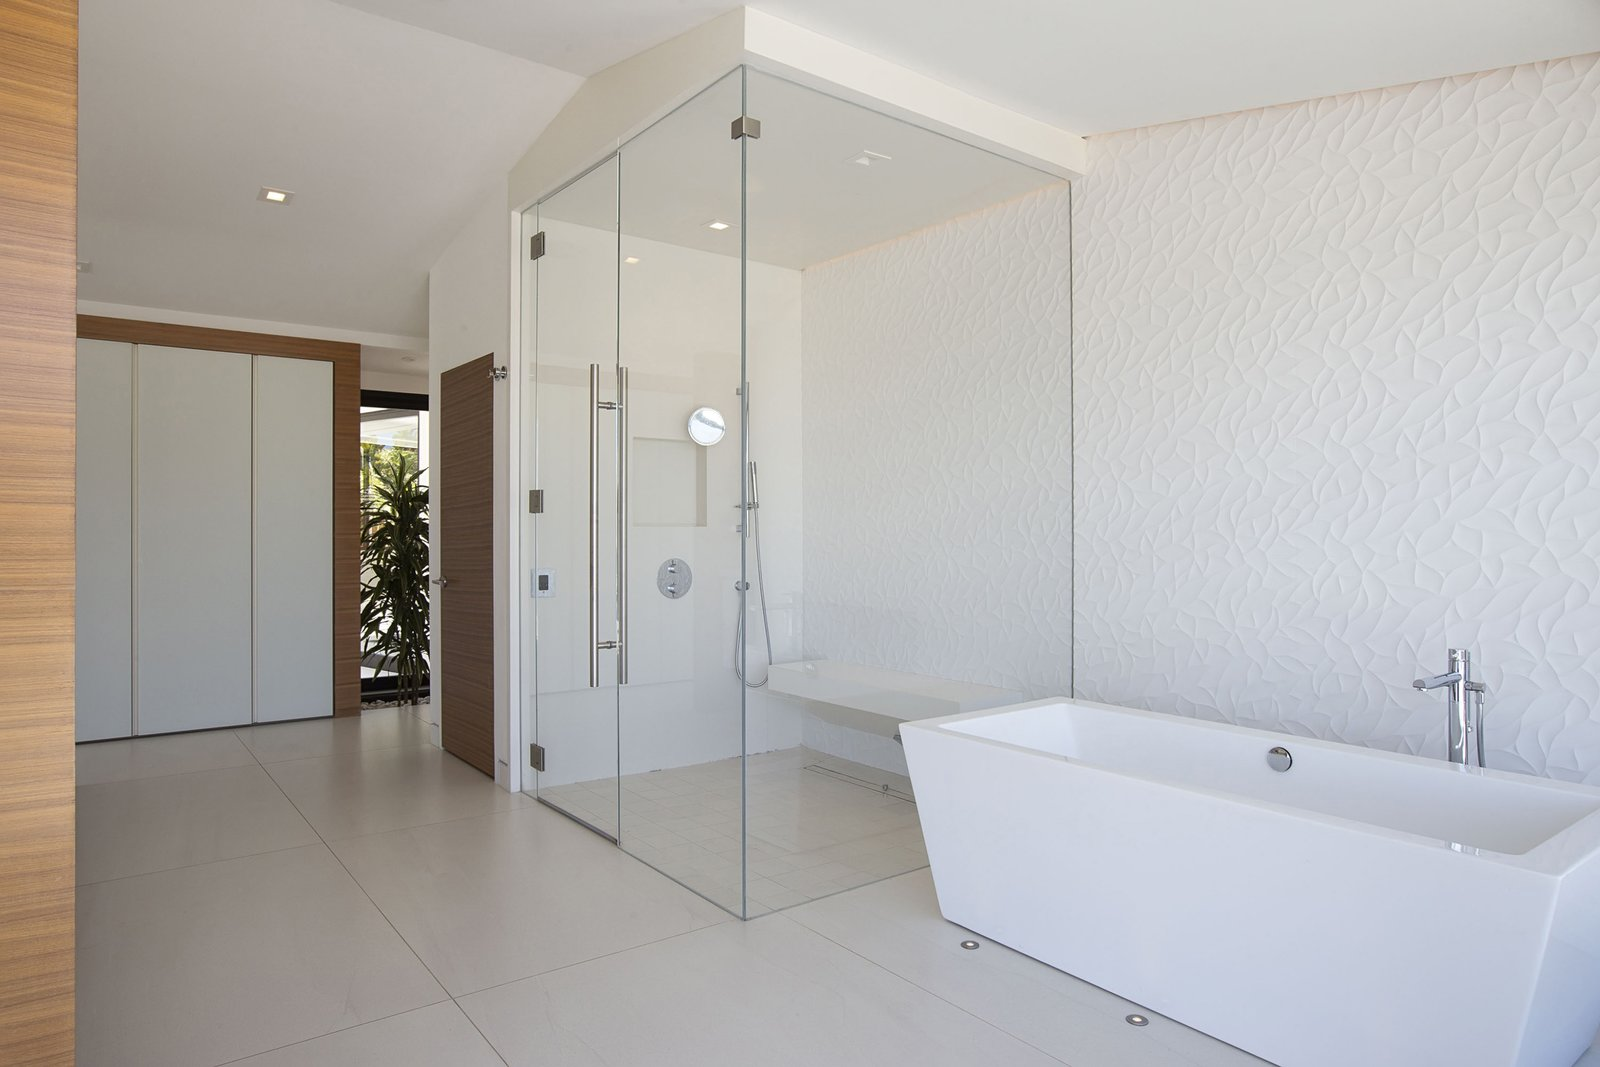 Bath Room, Ceramic Tile Floor, Freestanding Tub, Enclosed Shower, Soaking Tub, and Recessed Lighting The master bath.  Photos from A Renovated Midcentury in San Diego Is Sharp and Sustainable